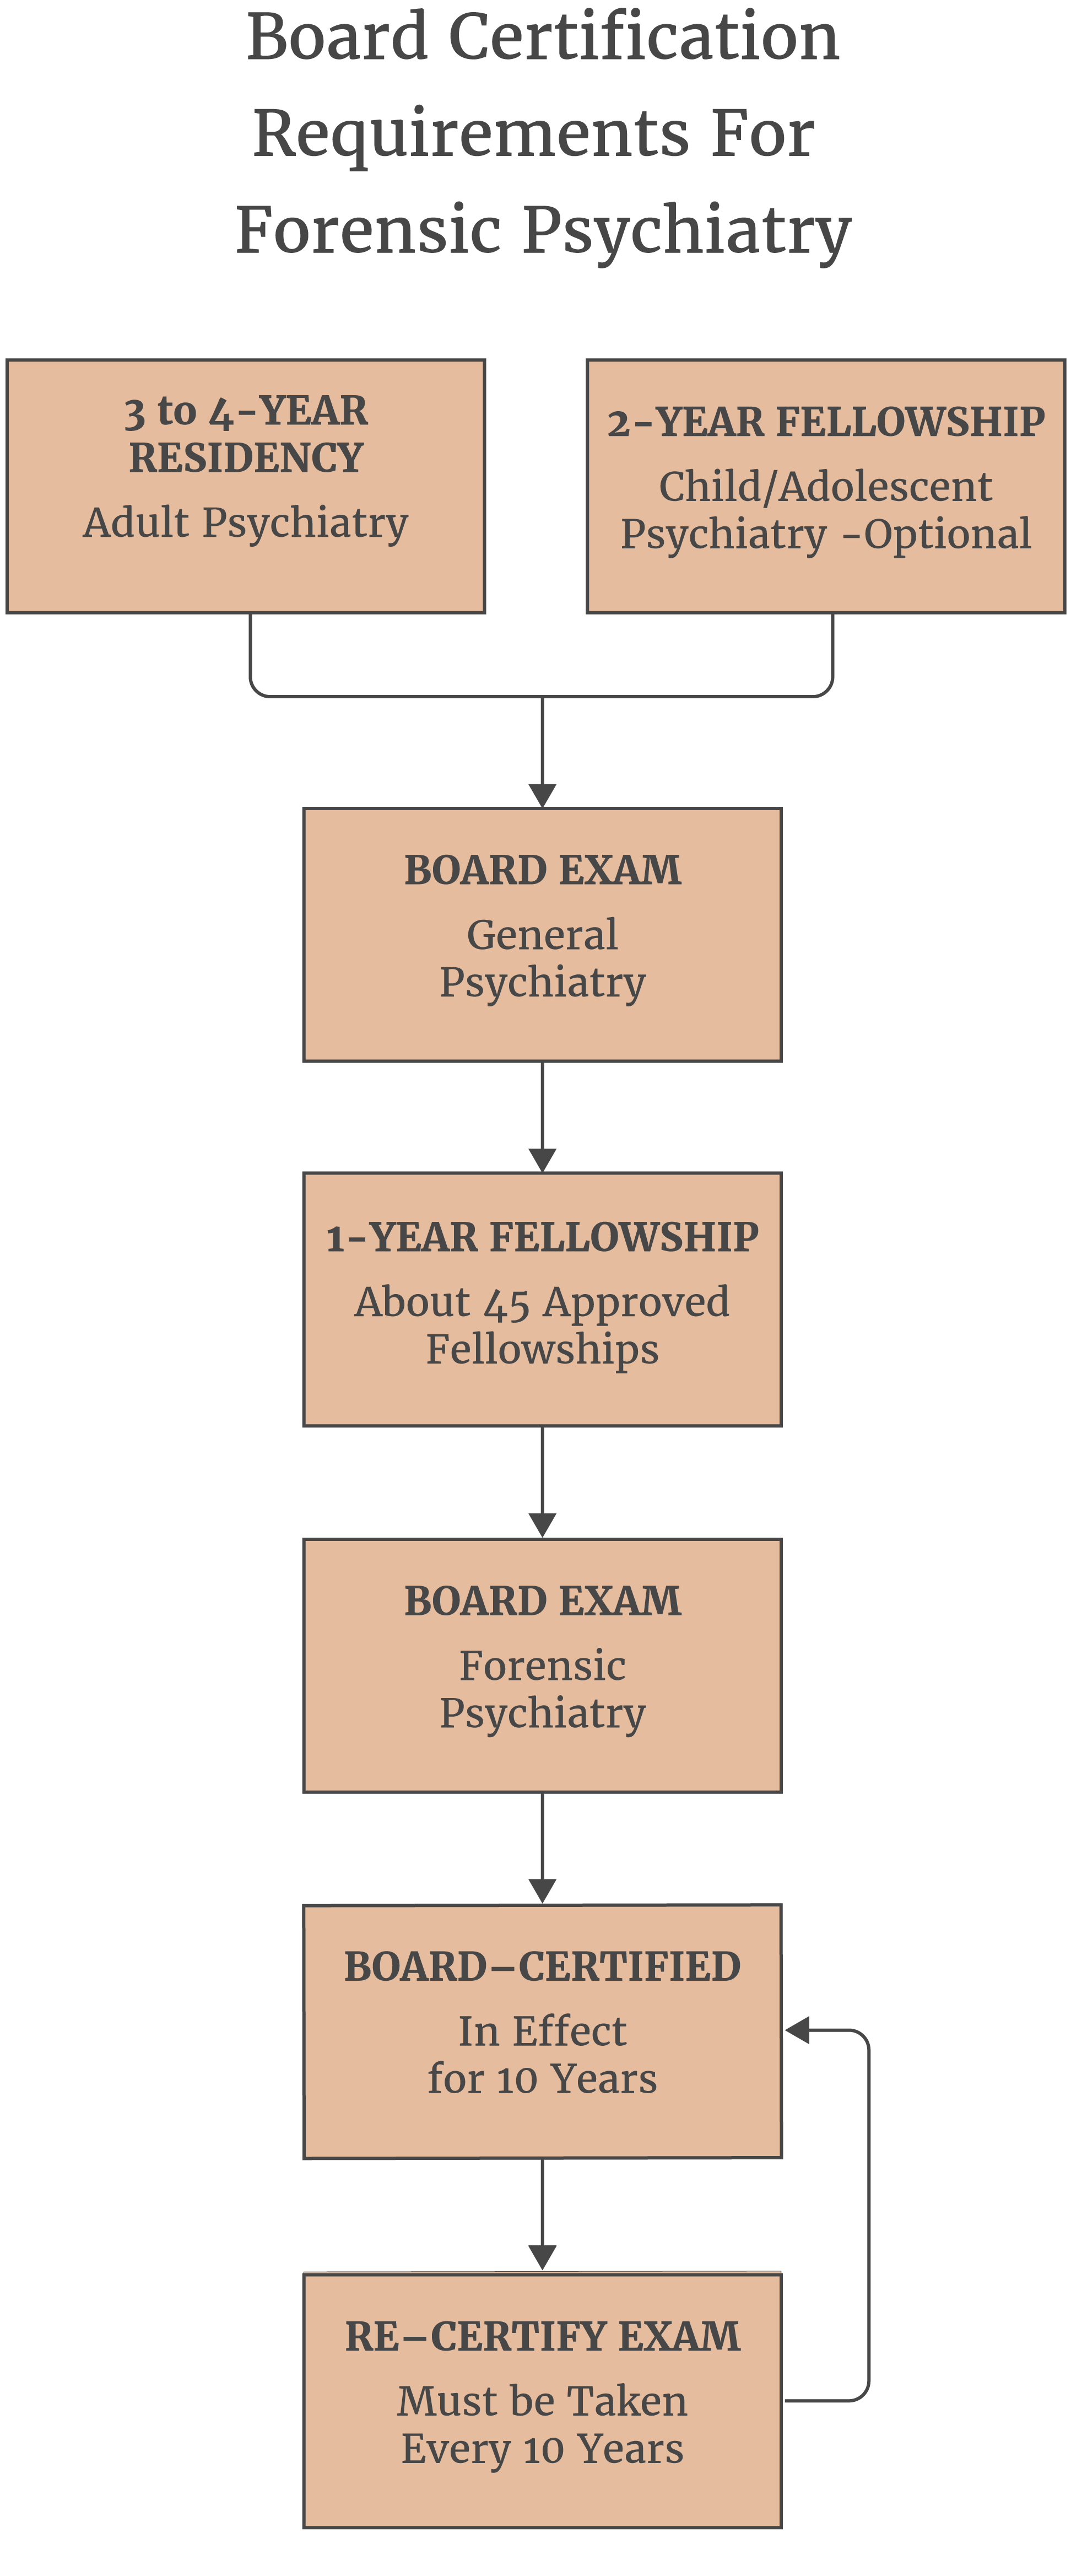 Forensic Psychiatry Clinical Legal And Ethical Issues